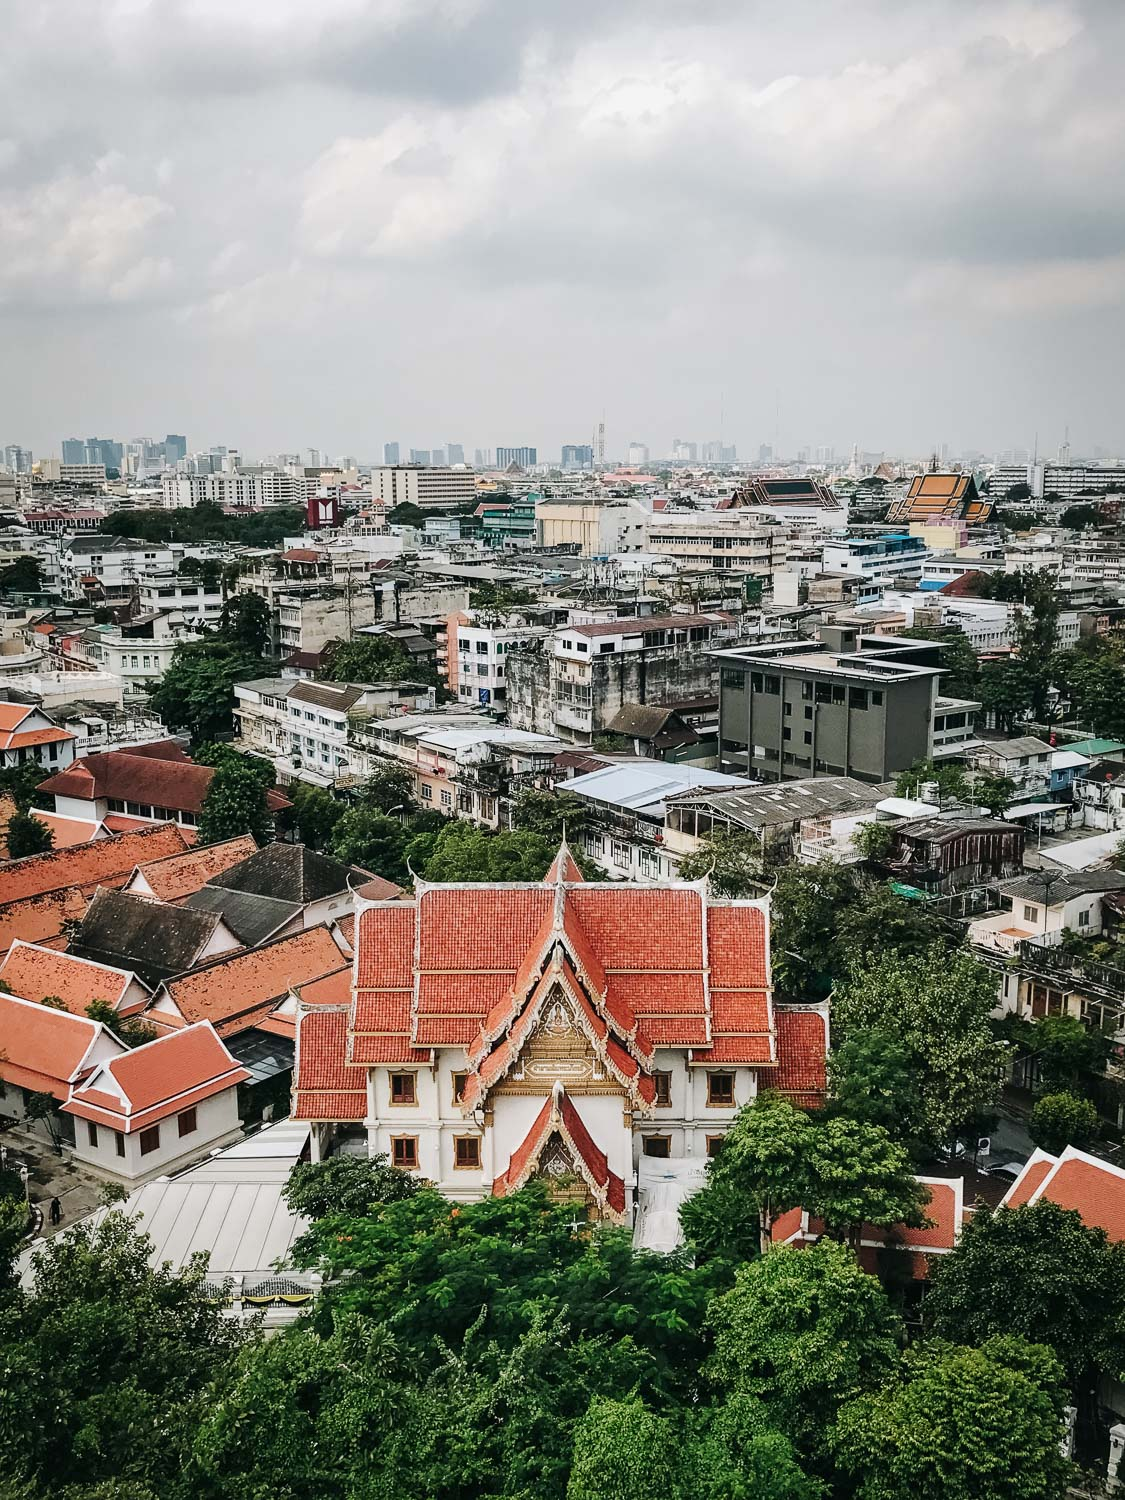 View of the city of Bangkok from the summit of Wat Saket, a Buddhist temple